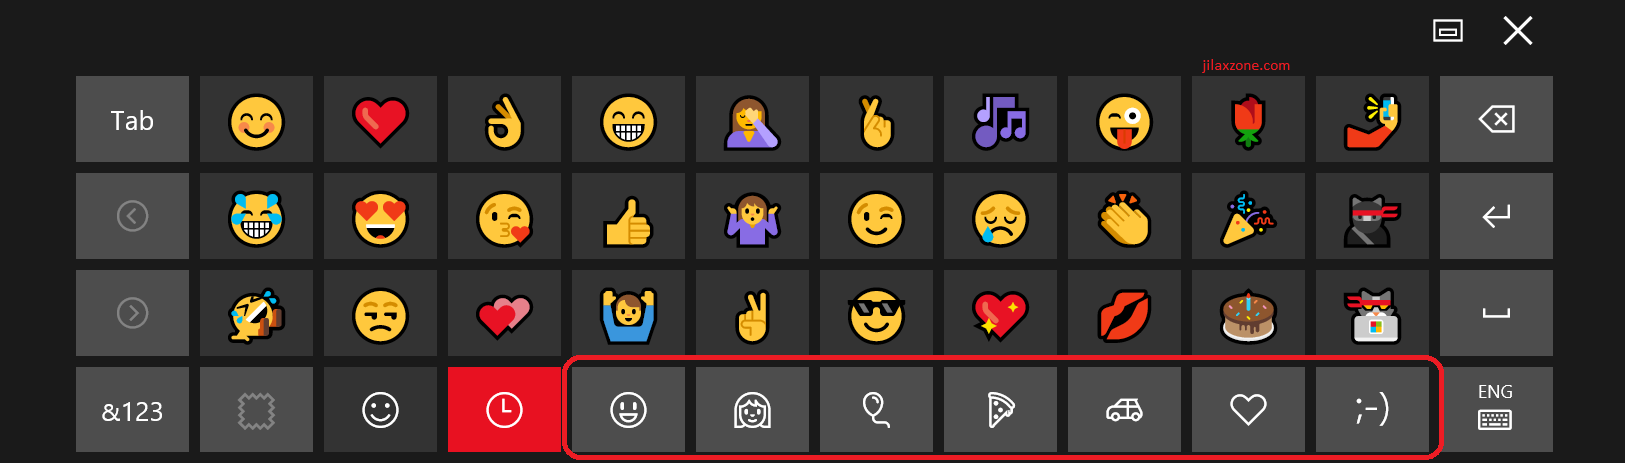 How To Enable And Use Emoji On Windows 10 Jilaxzone